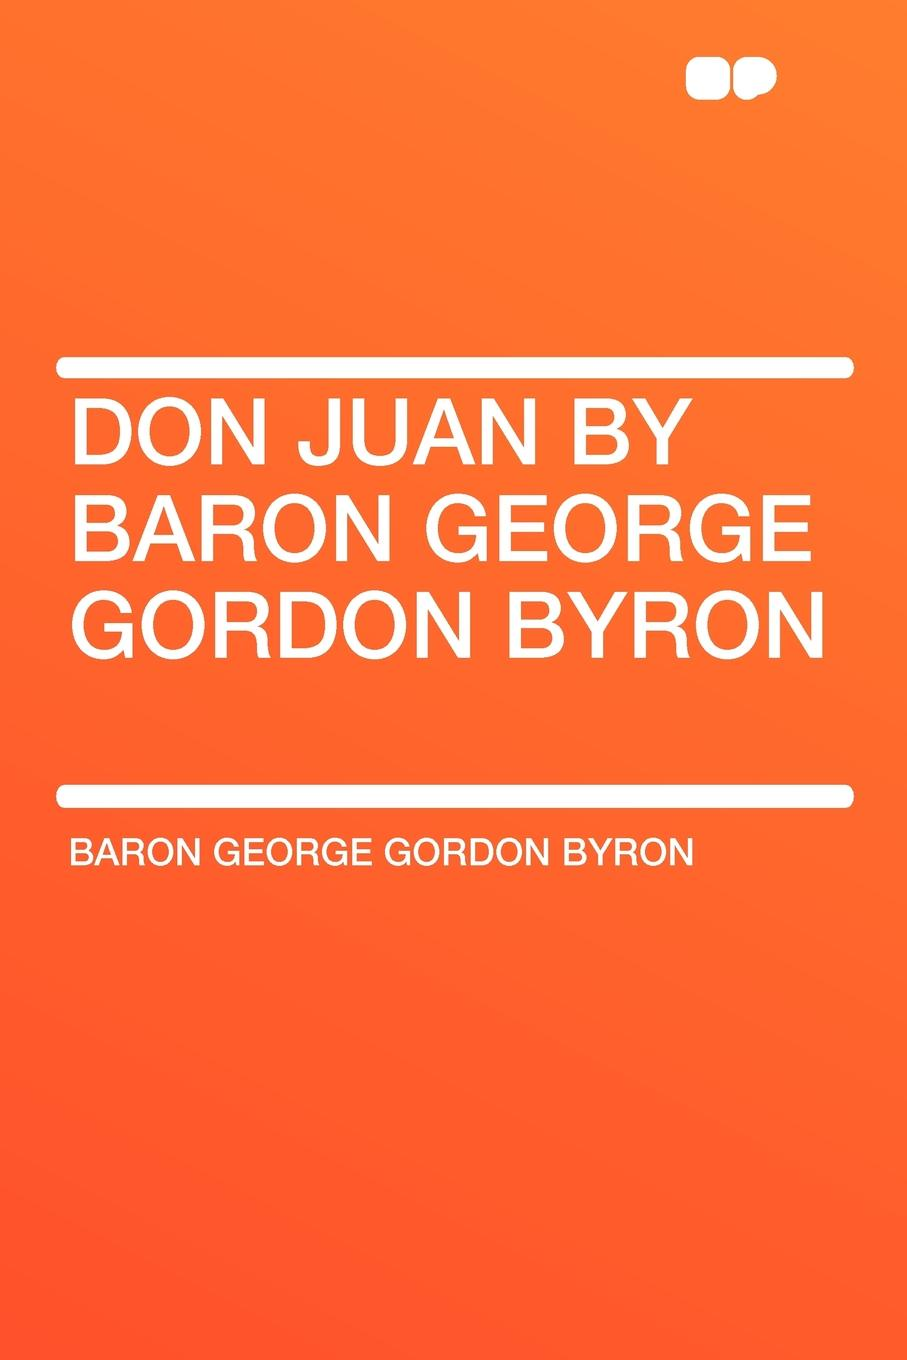 George Gordon Byron Don Juan by Baron George Gordon Byron